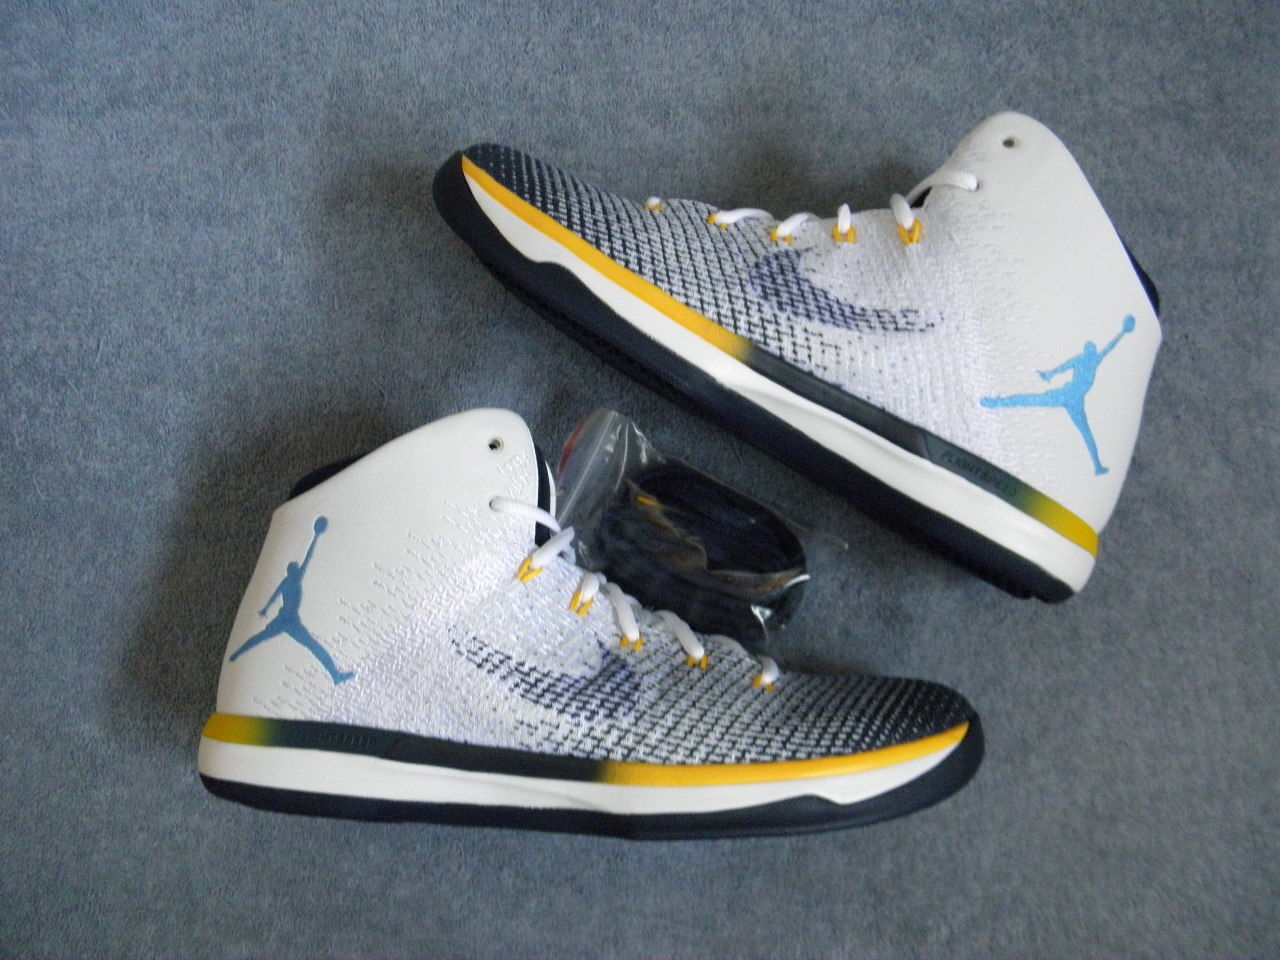 Nike Air Jordan XXX1 XXXI 31 Marquette PE Player Sample Edition sz 11 HOME WHITE